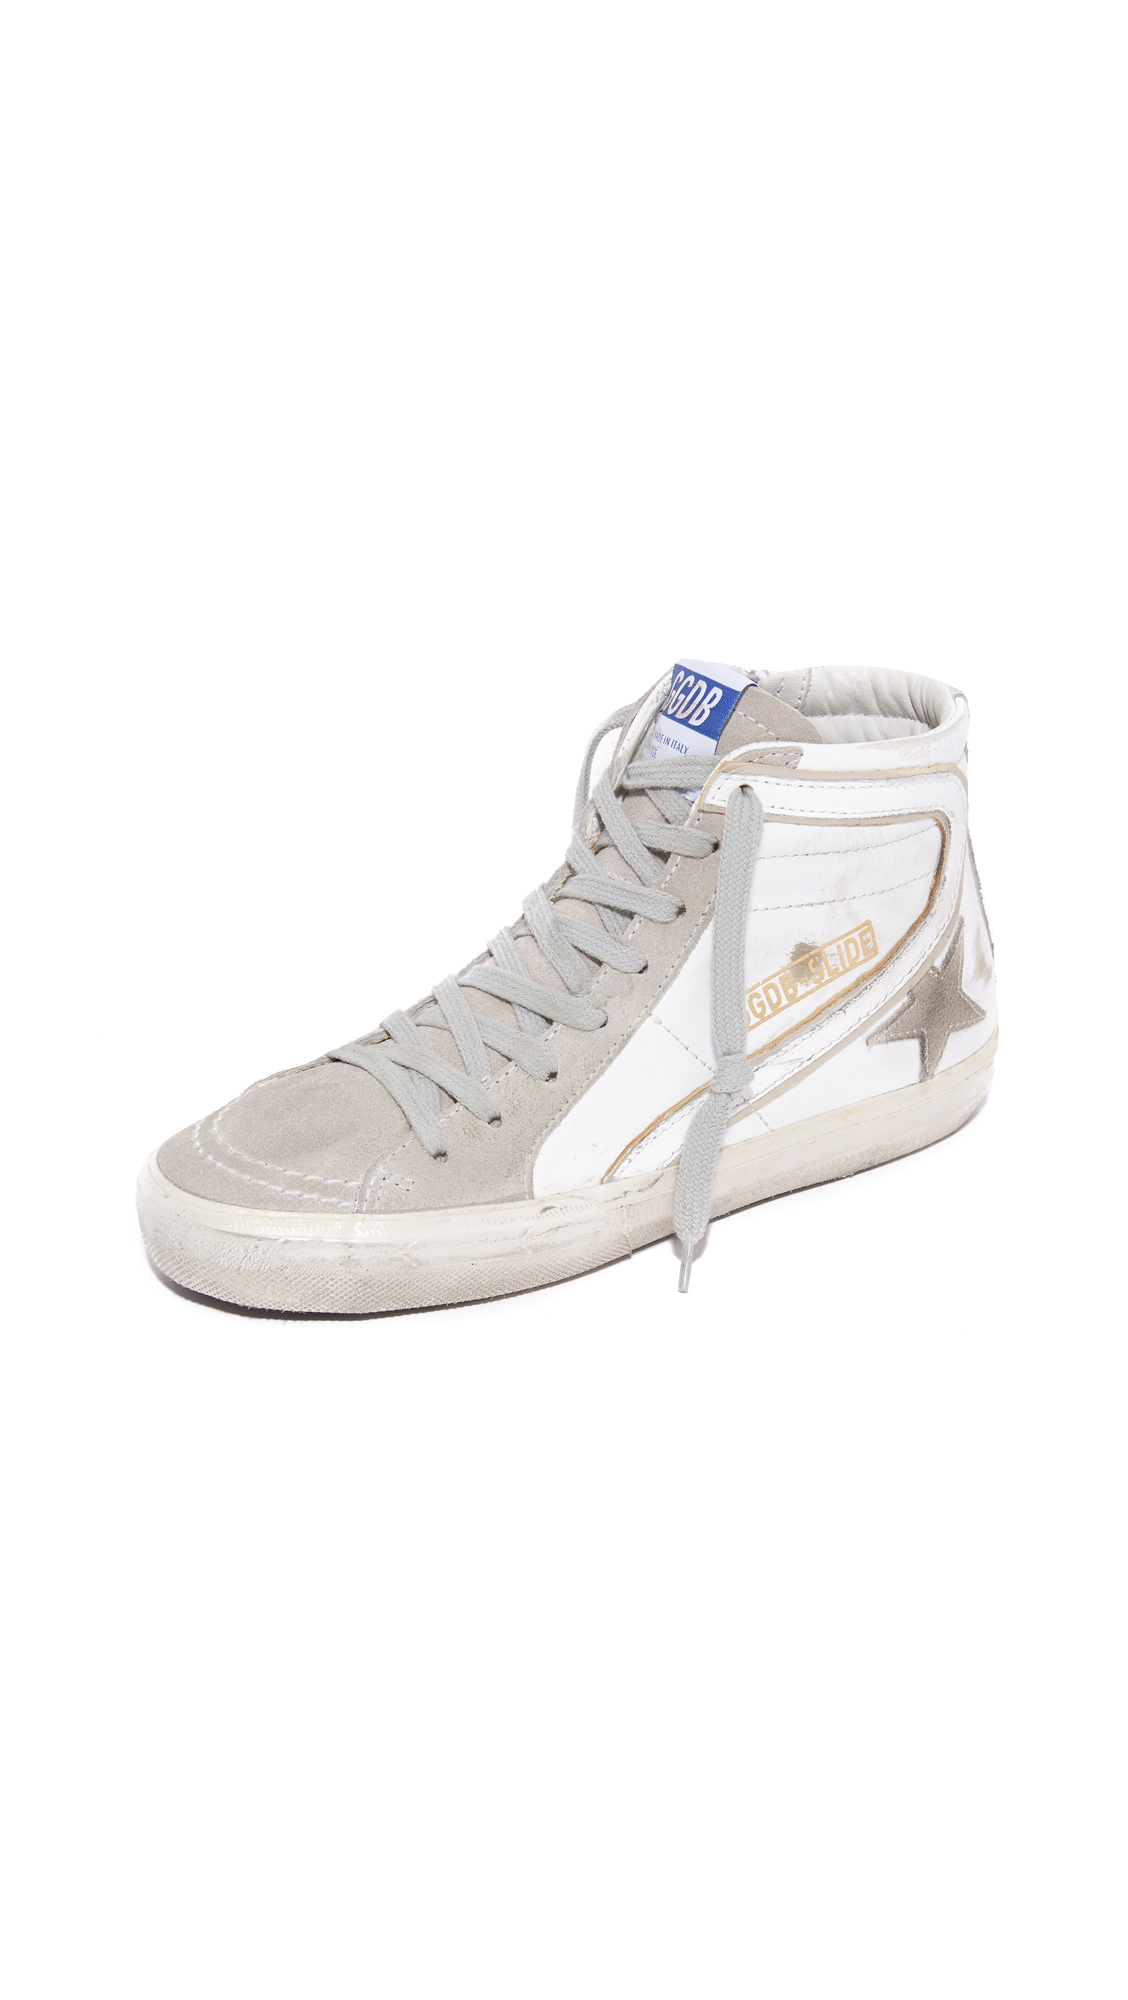 Golden Goose Slide Sneakers - White